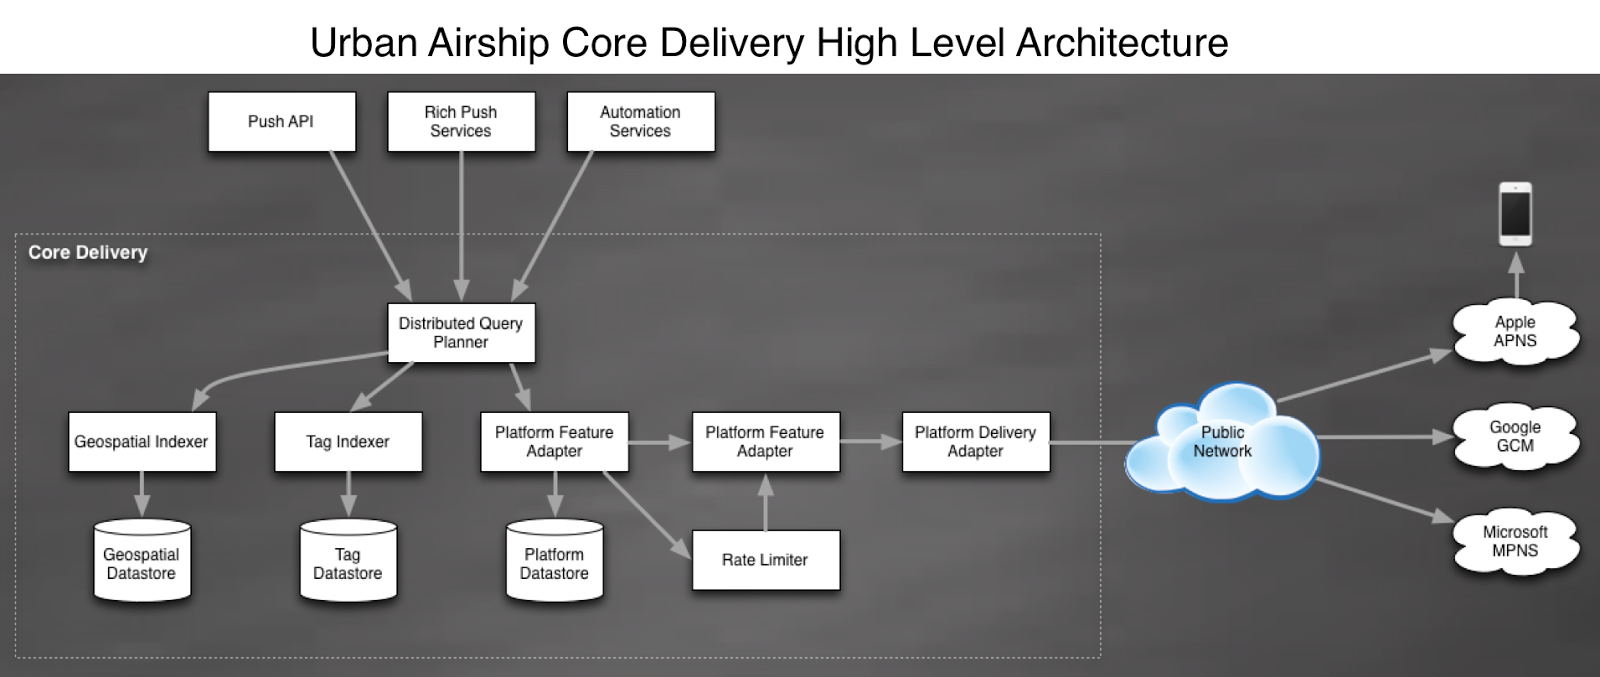 urban-airship-core-delivery-high-level-architecture